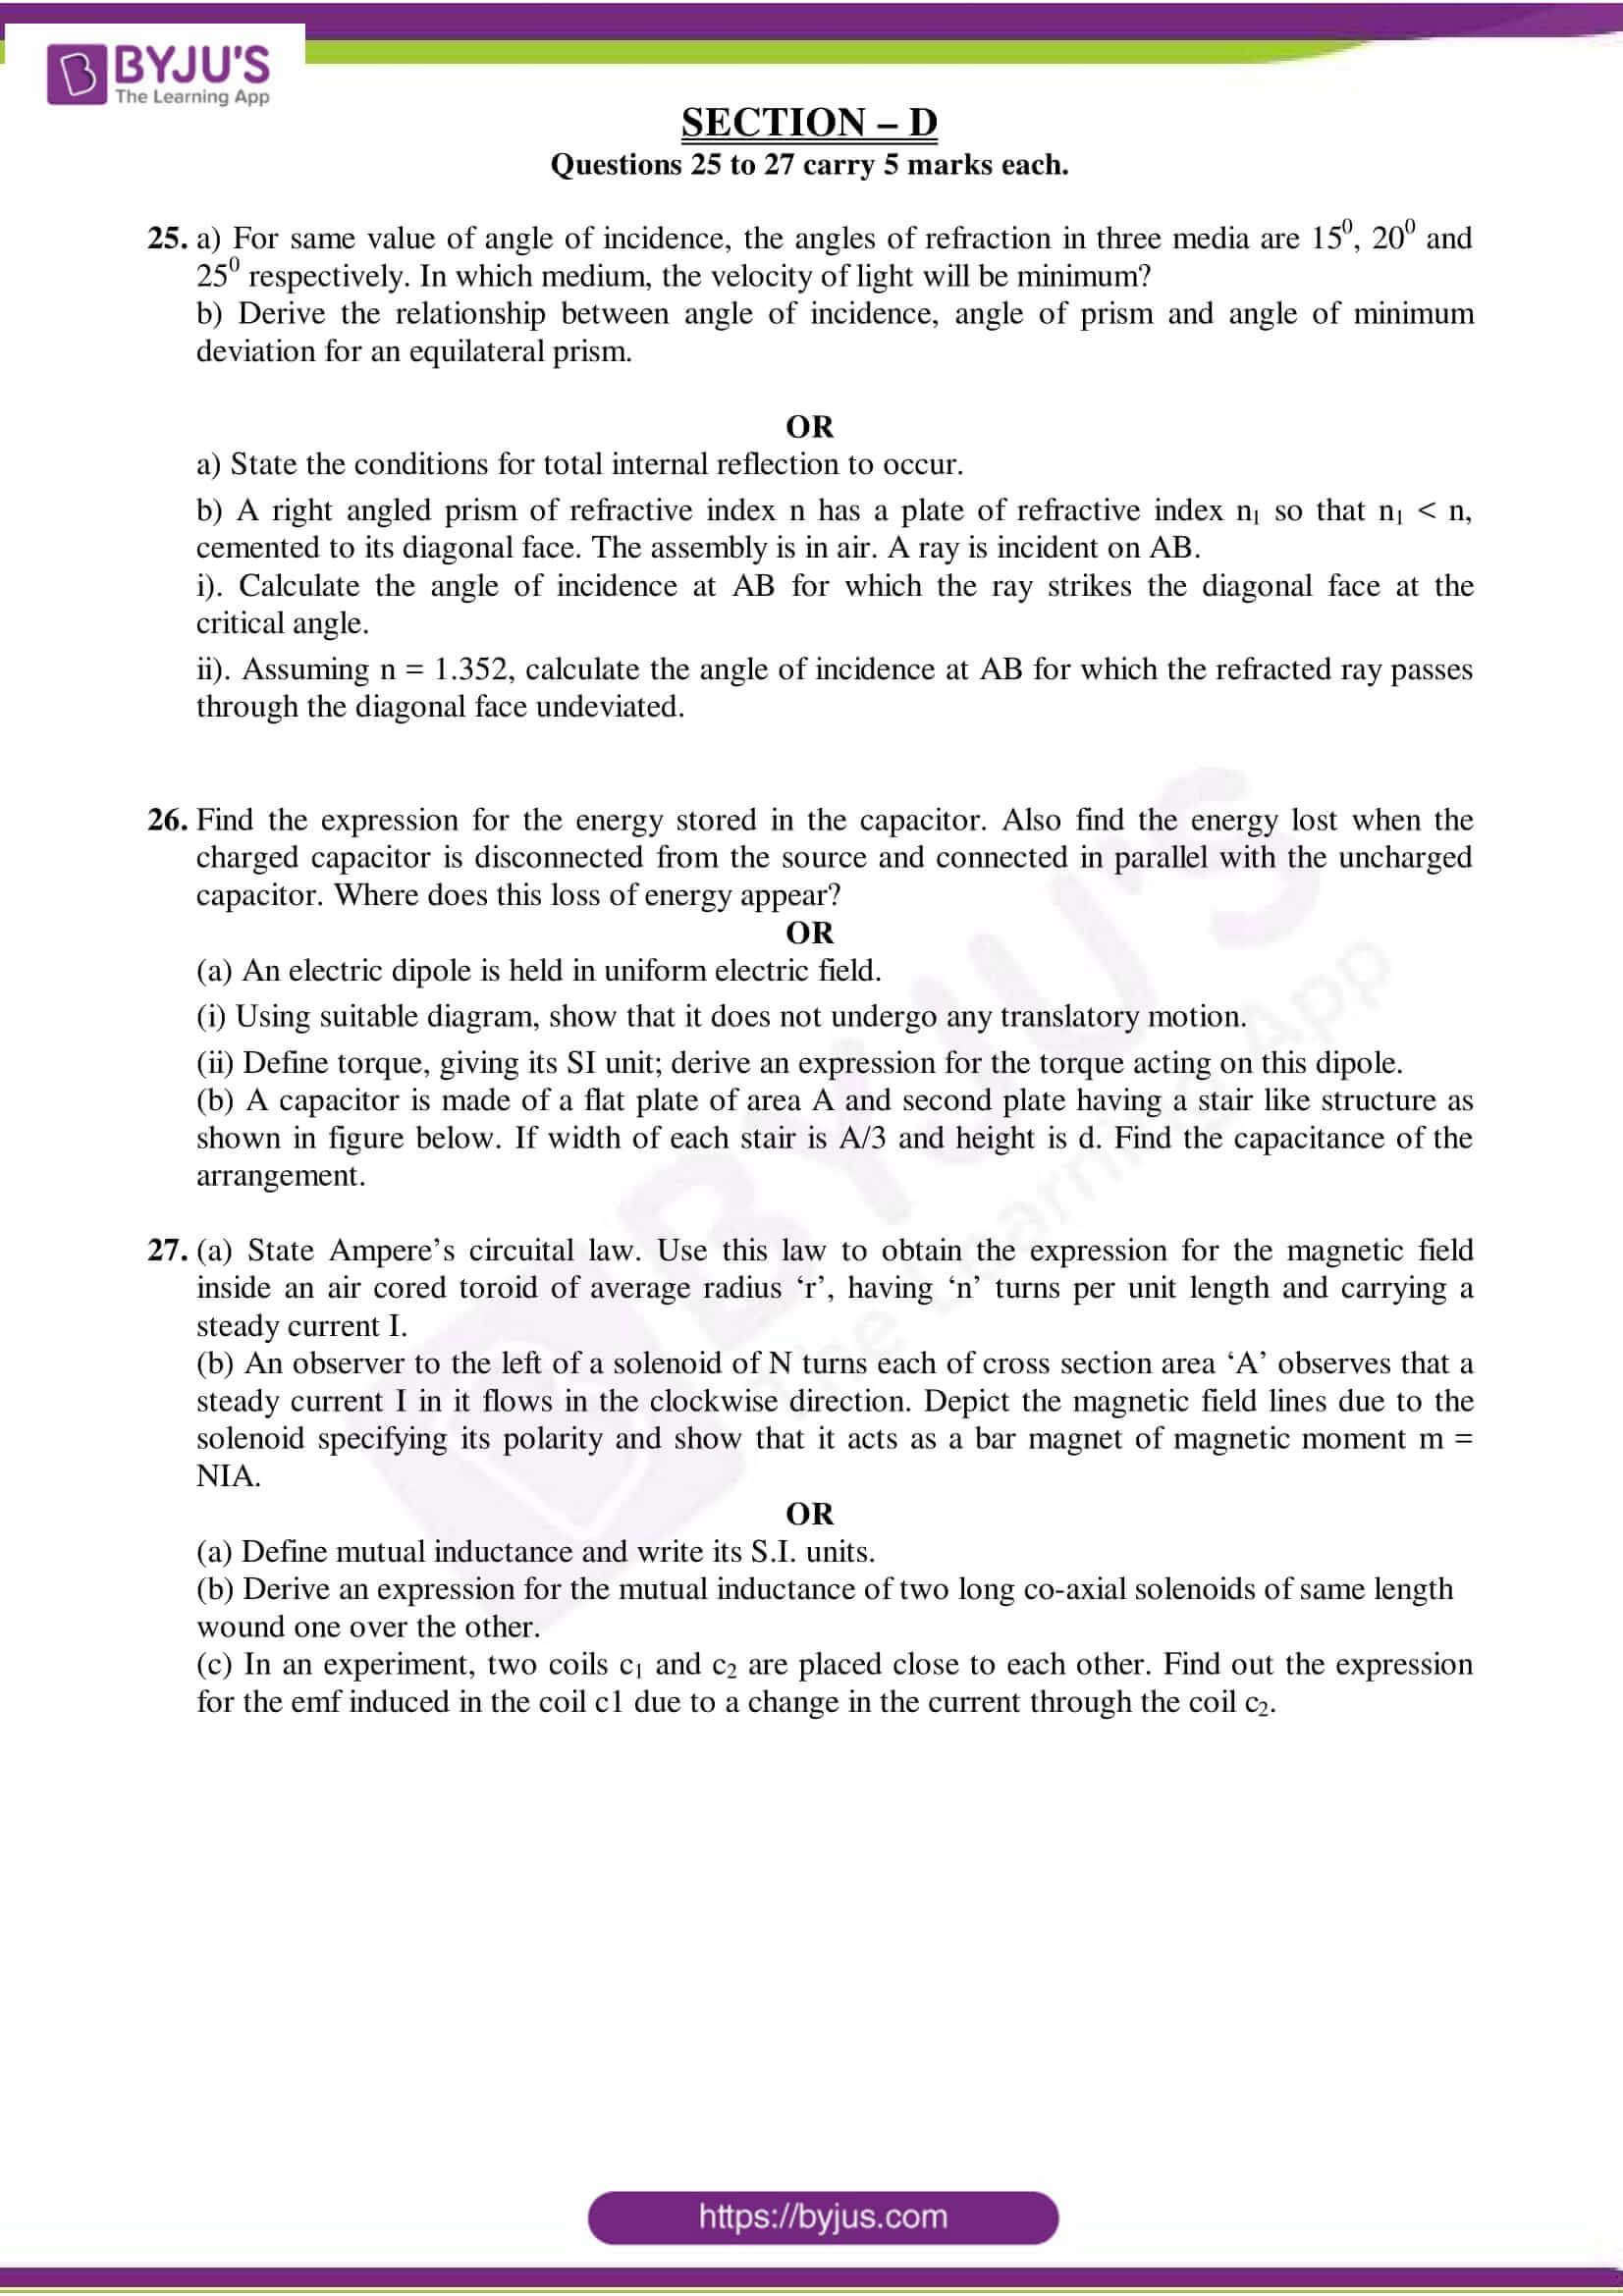 cbse class 12 physics sample paper set 4